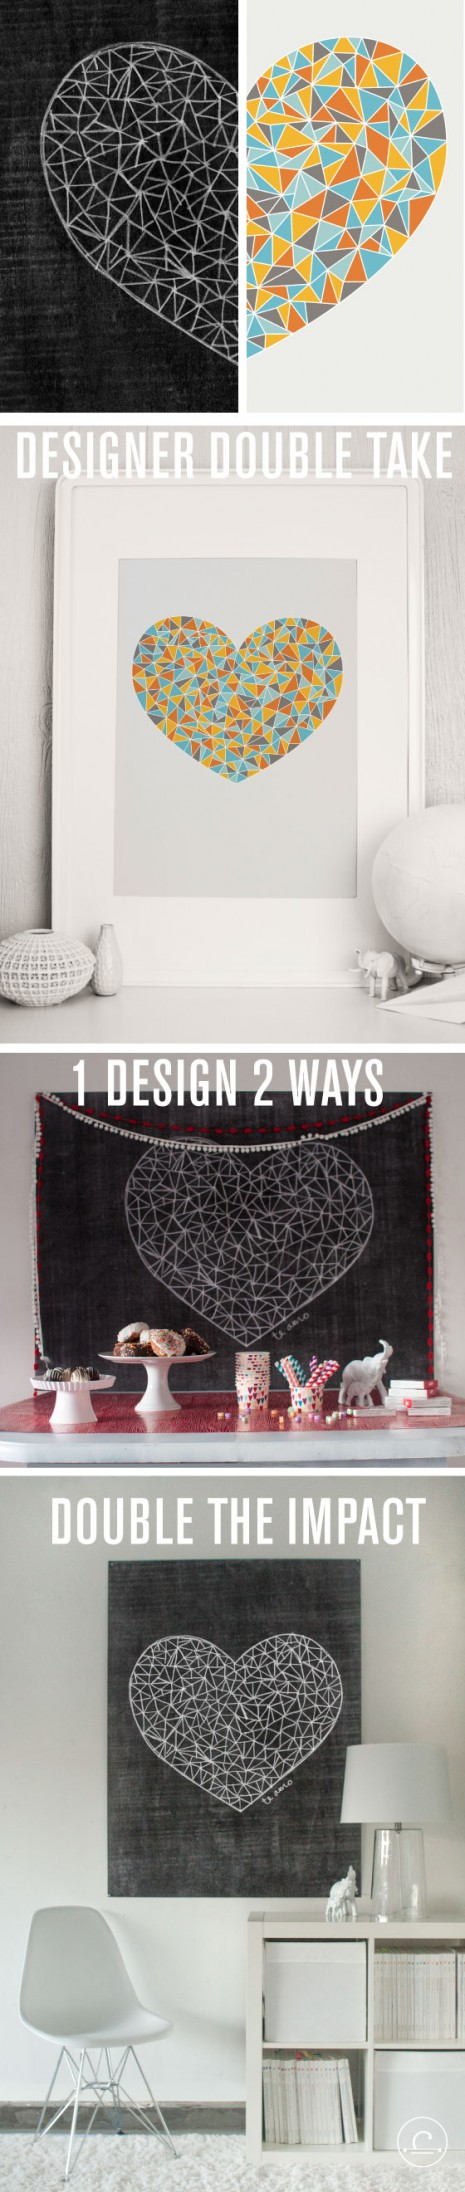 Designer Double Take: Alma Loveland and Melanie Burk design 1 heart 2 ways. Download both for $8; print as many as you like!